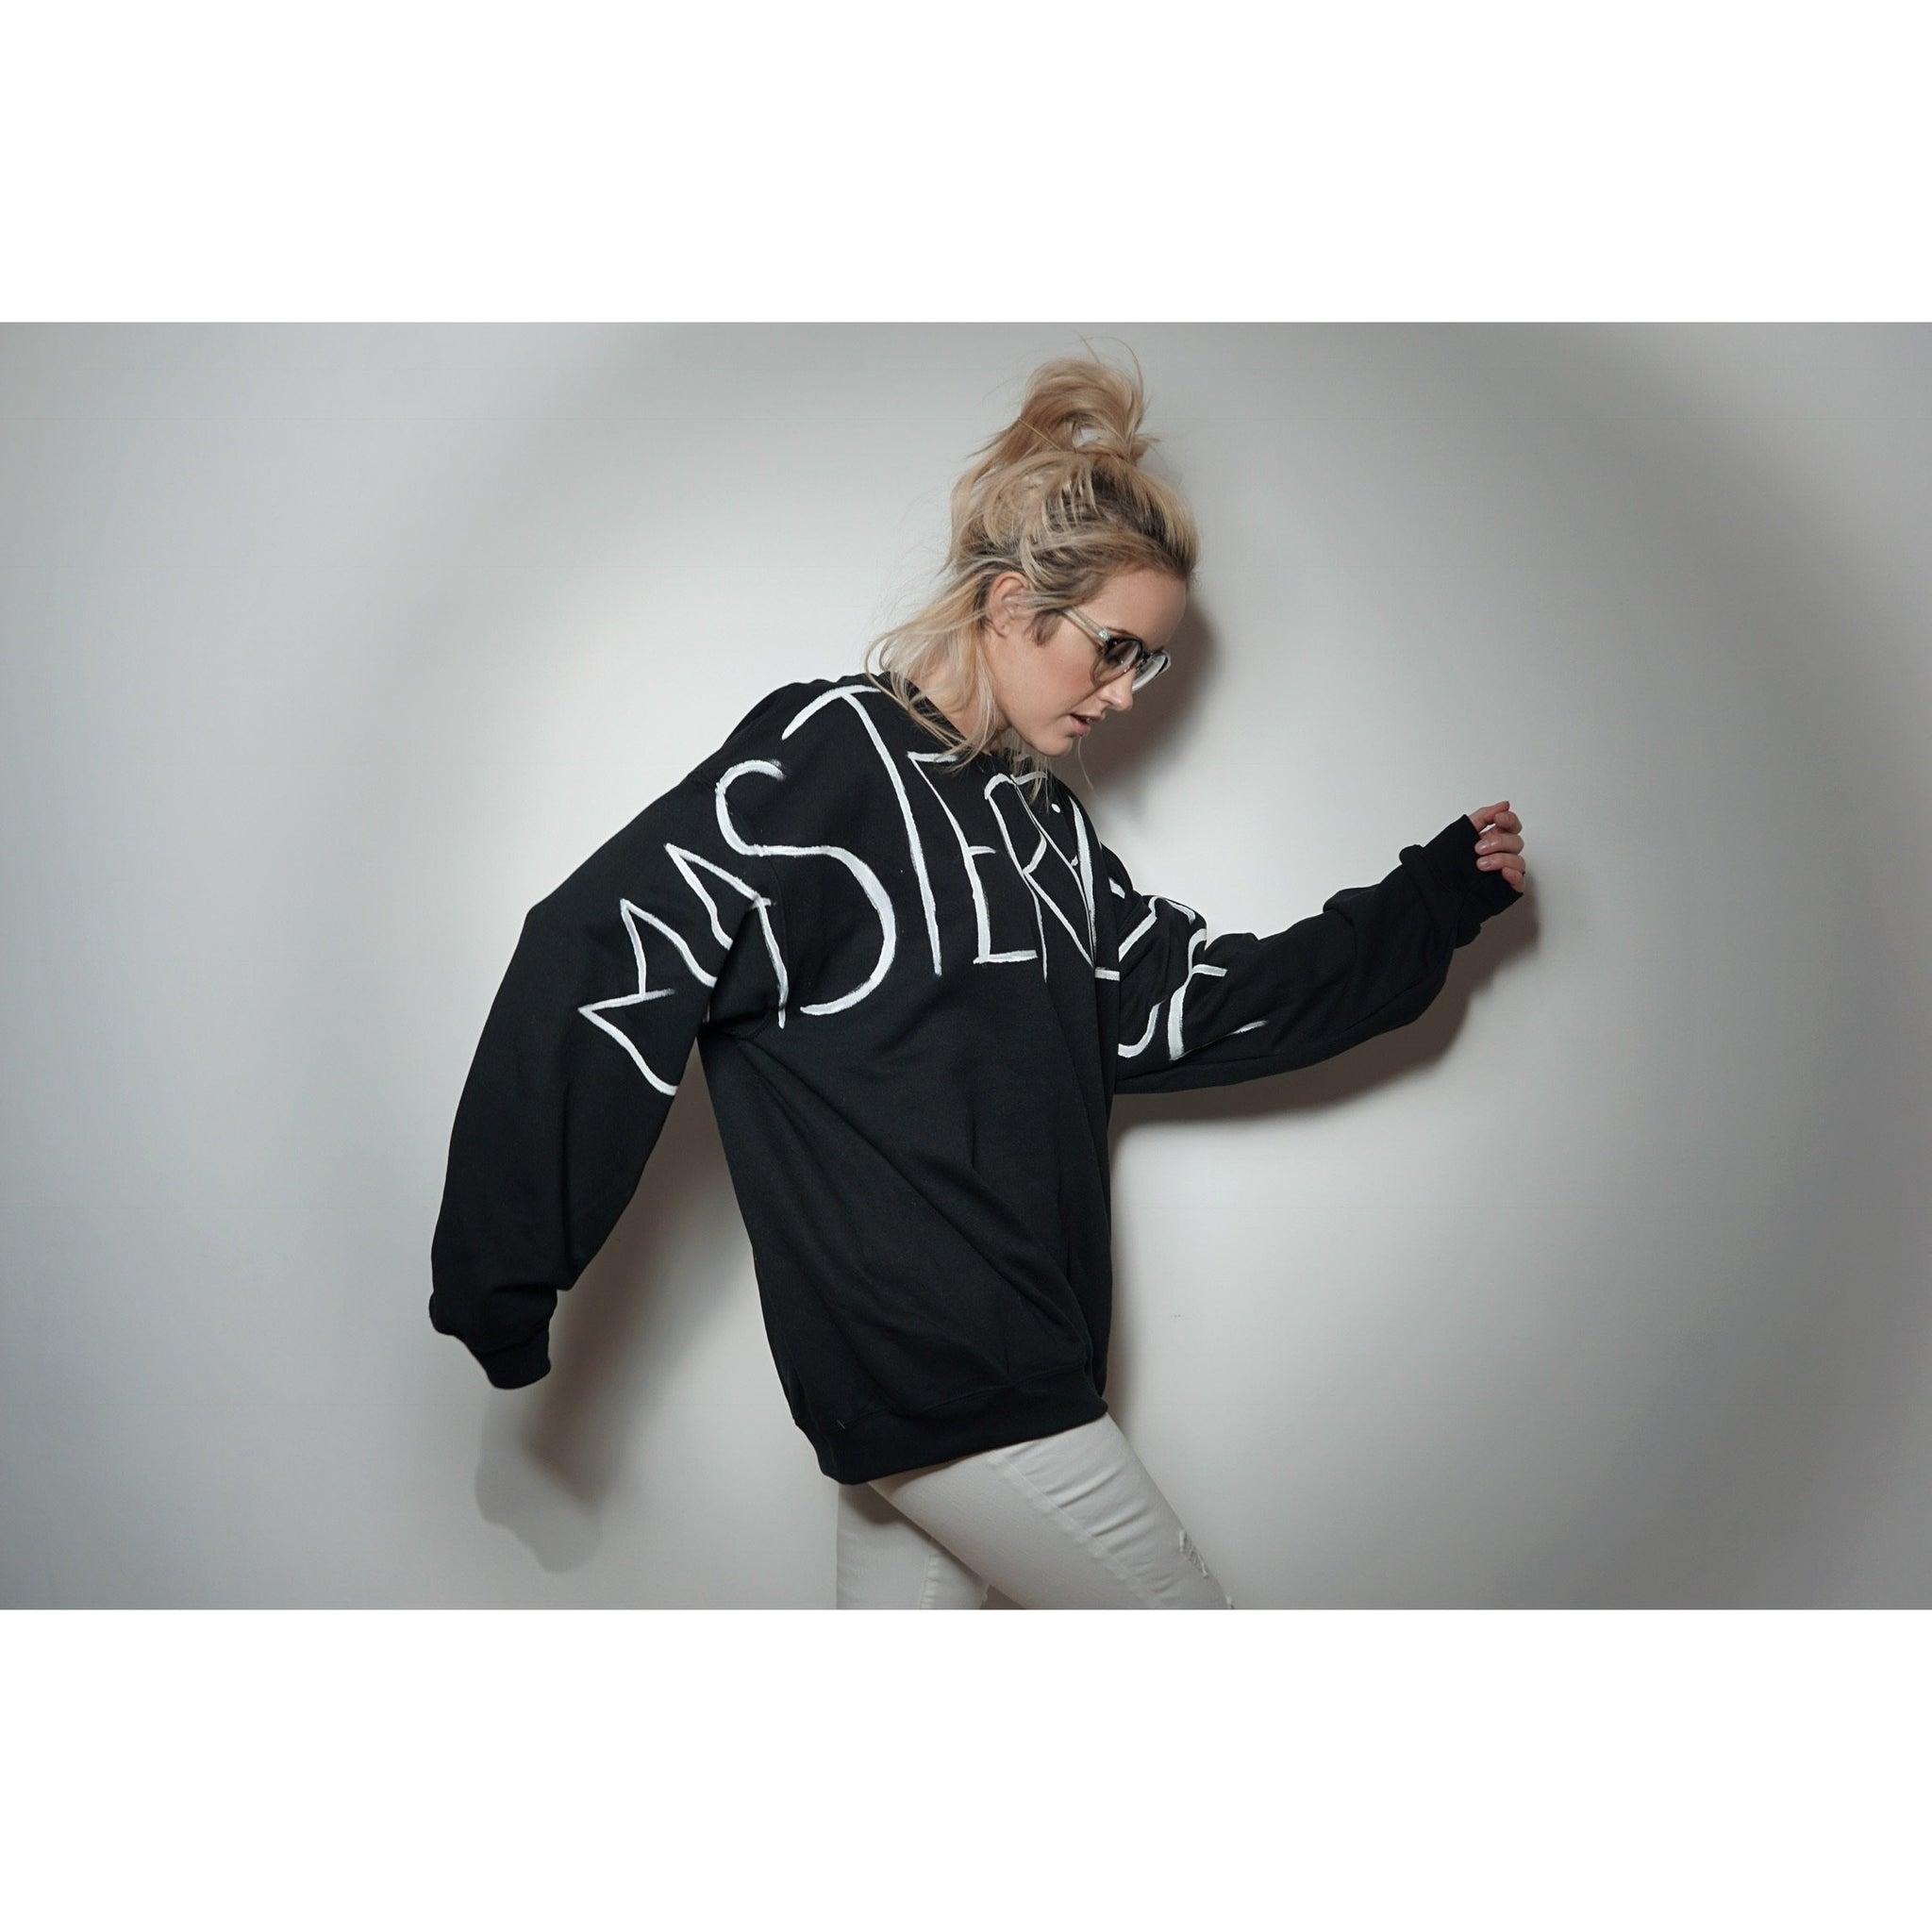 WOA | Masterpiece Sweatshirt